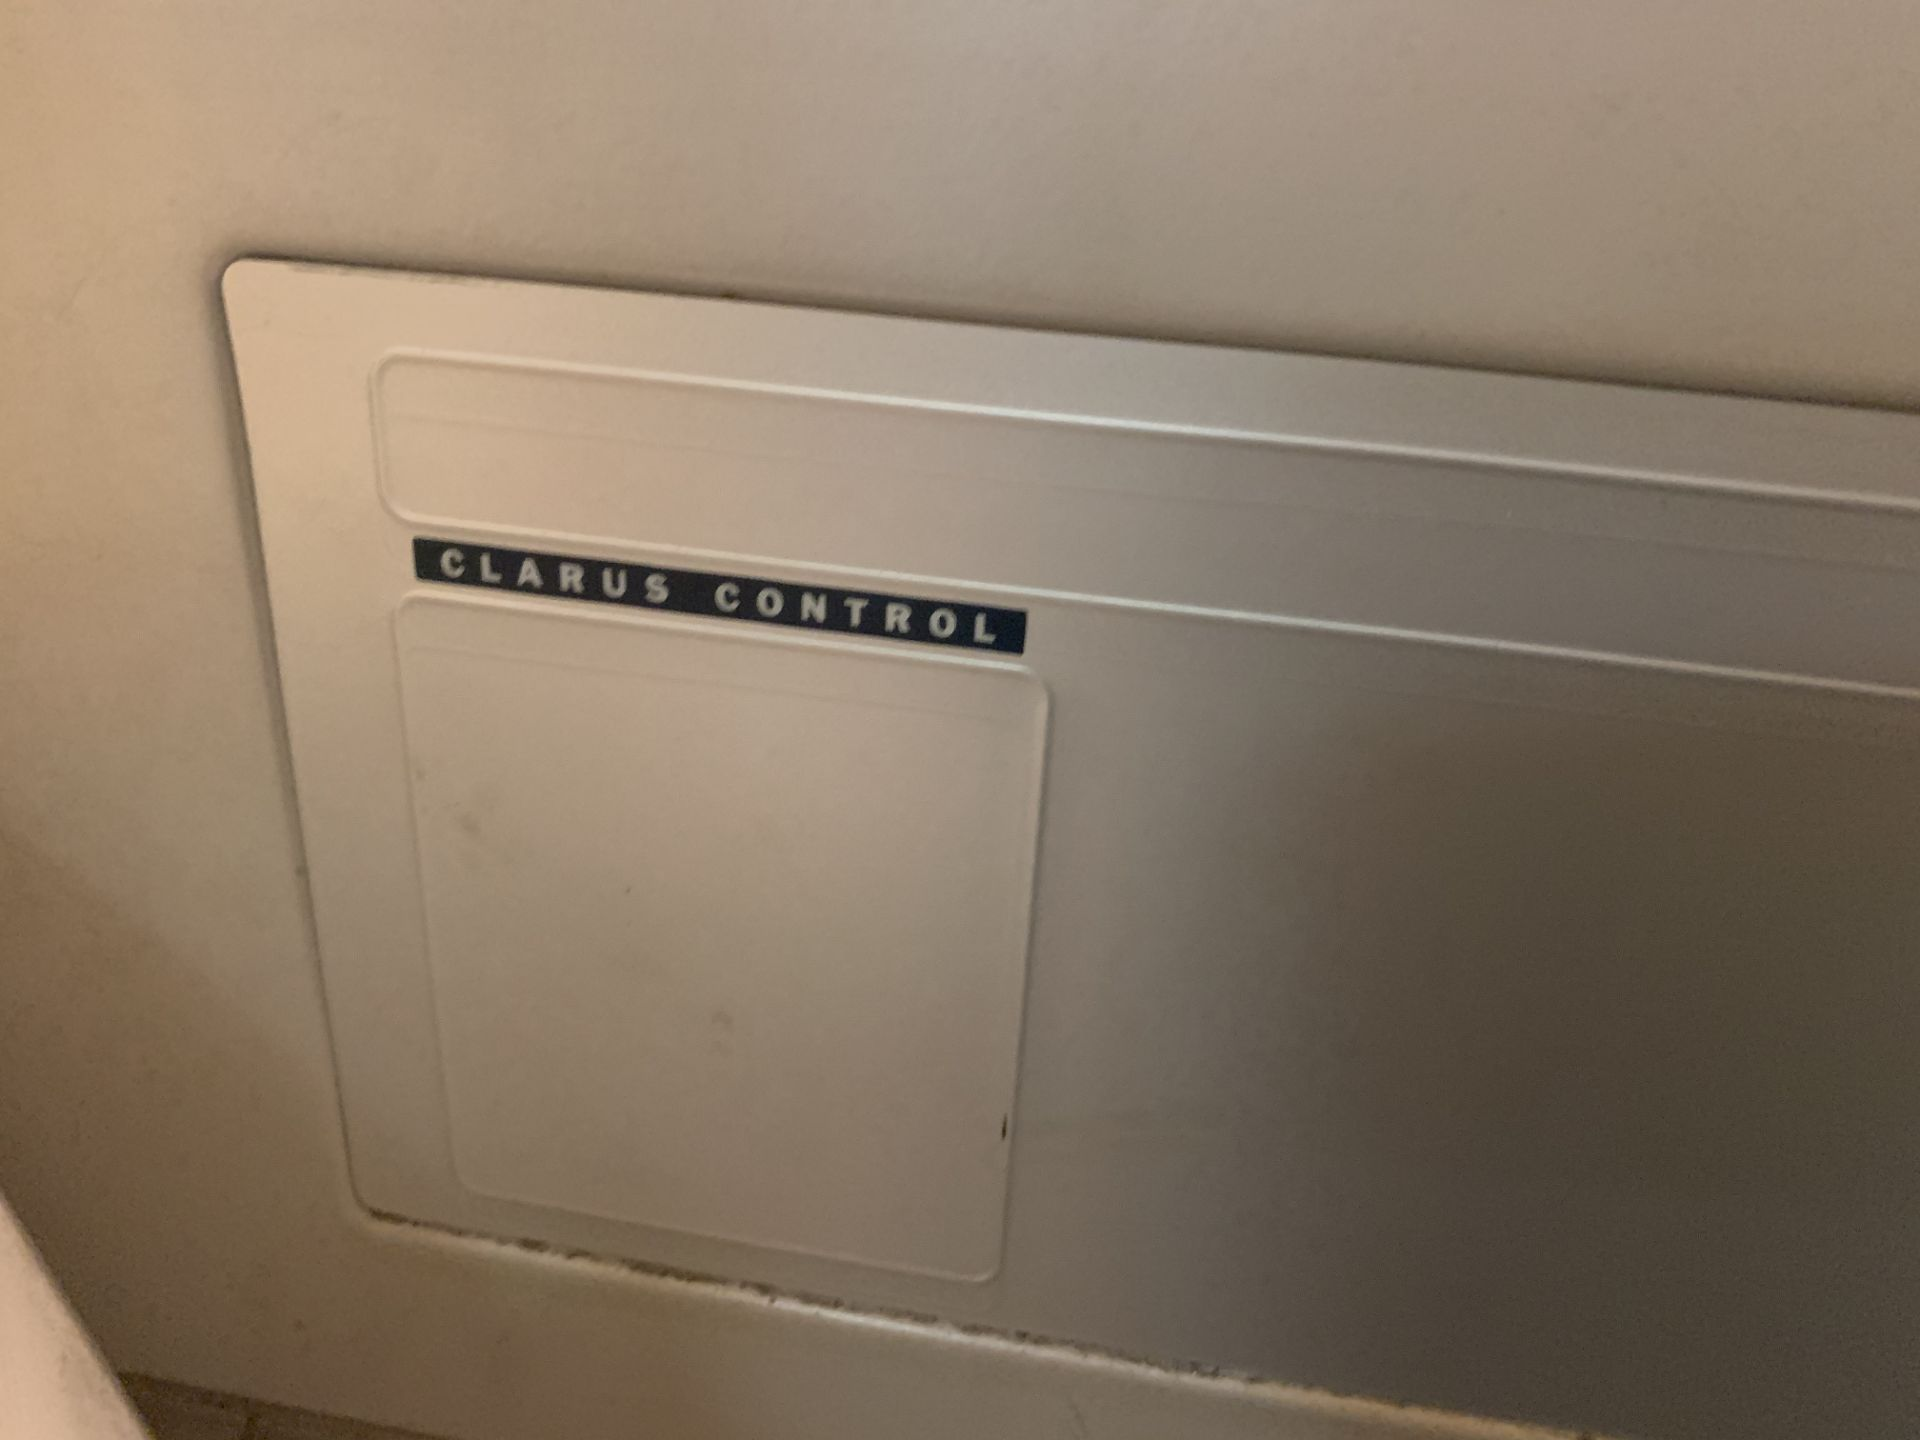 Lot 48 - WASCOMAT SV640C WASHING MACHINE WITH CLARUS CONTROL - 40LB CAPACITY